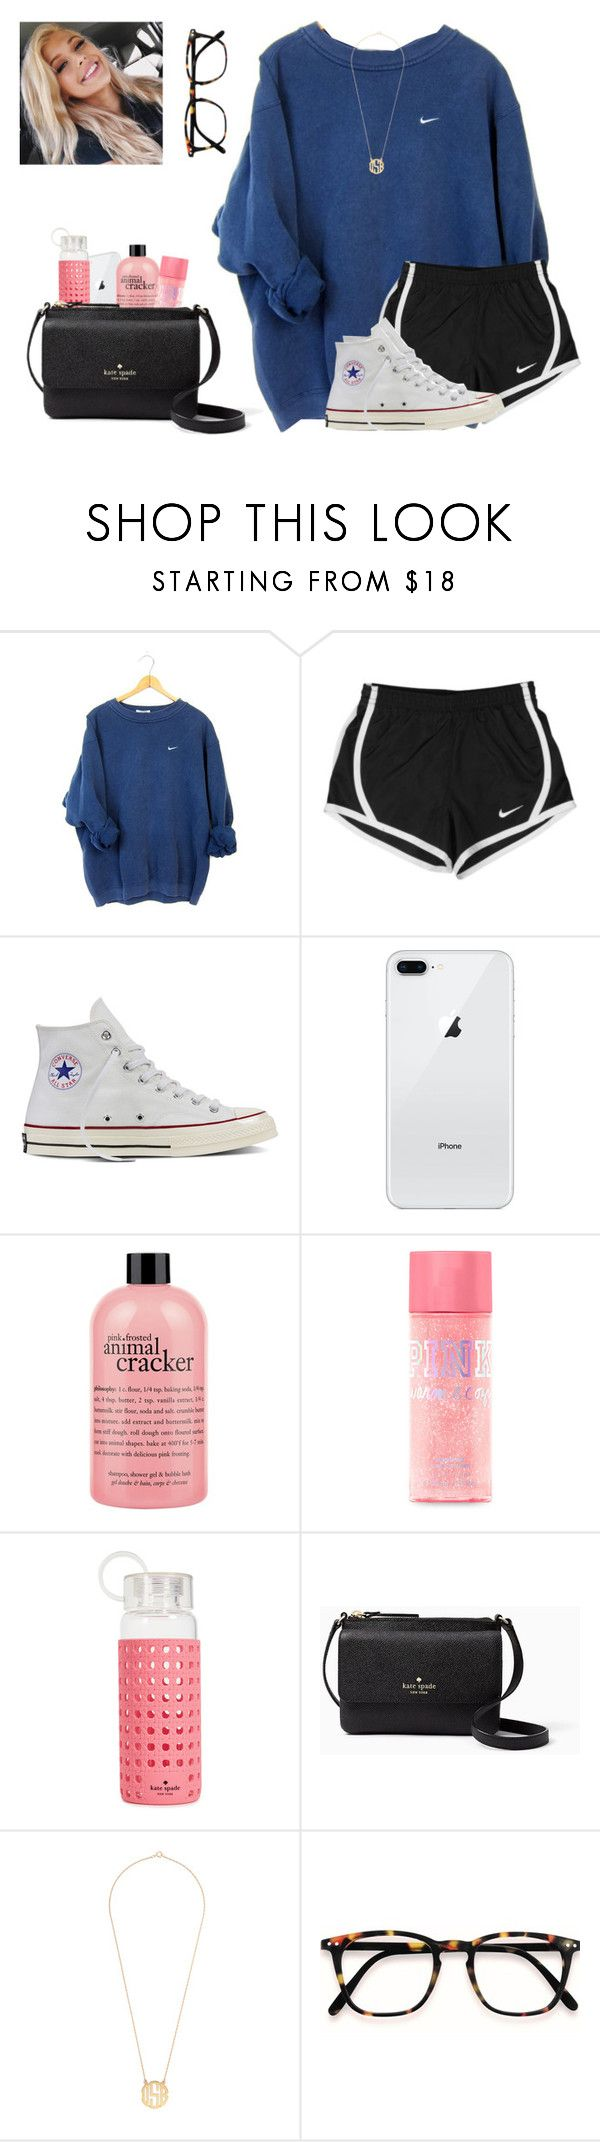 """We've come so far"" by preppy-lexi-1013 ❤ liked on Polyvore featuring NIKE, Converse, philosophy and Kate Spade"